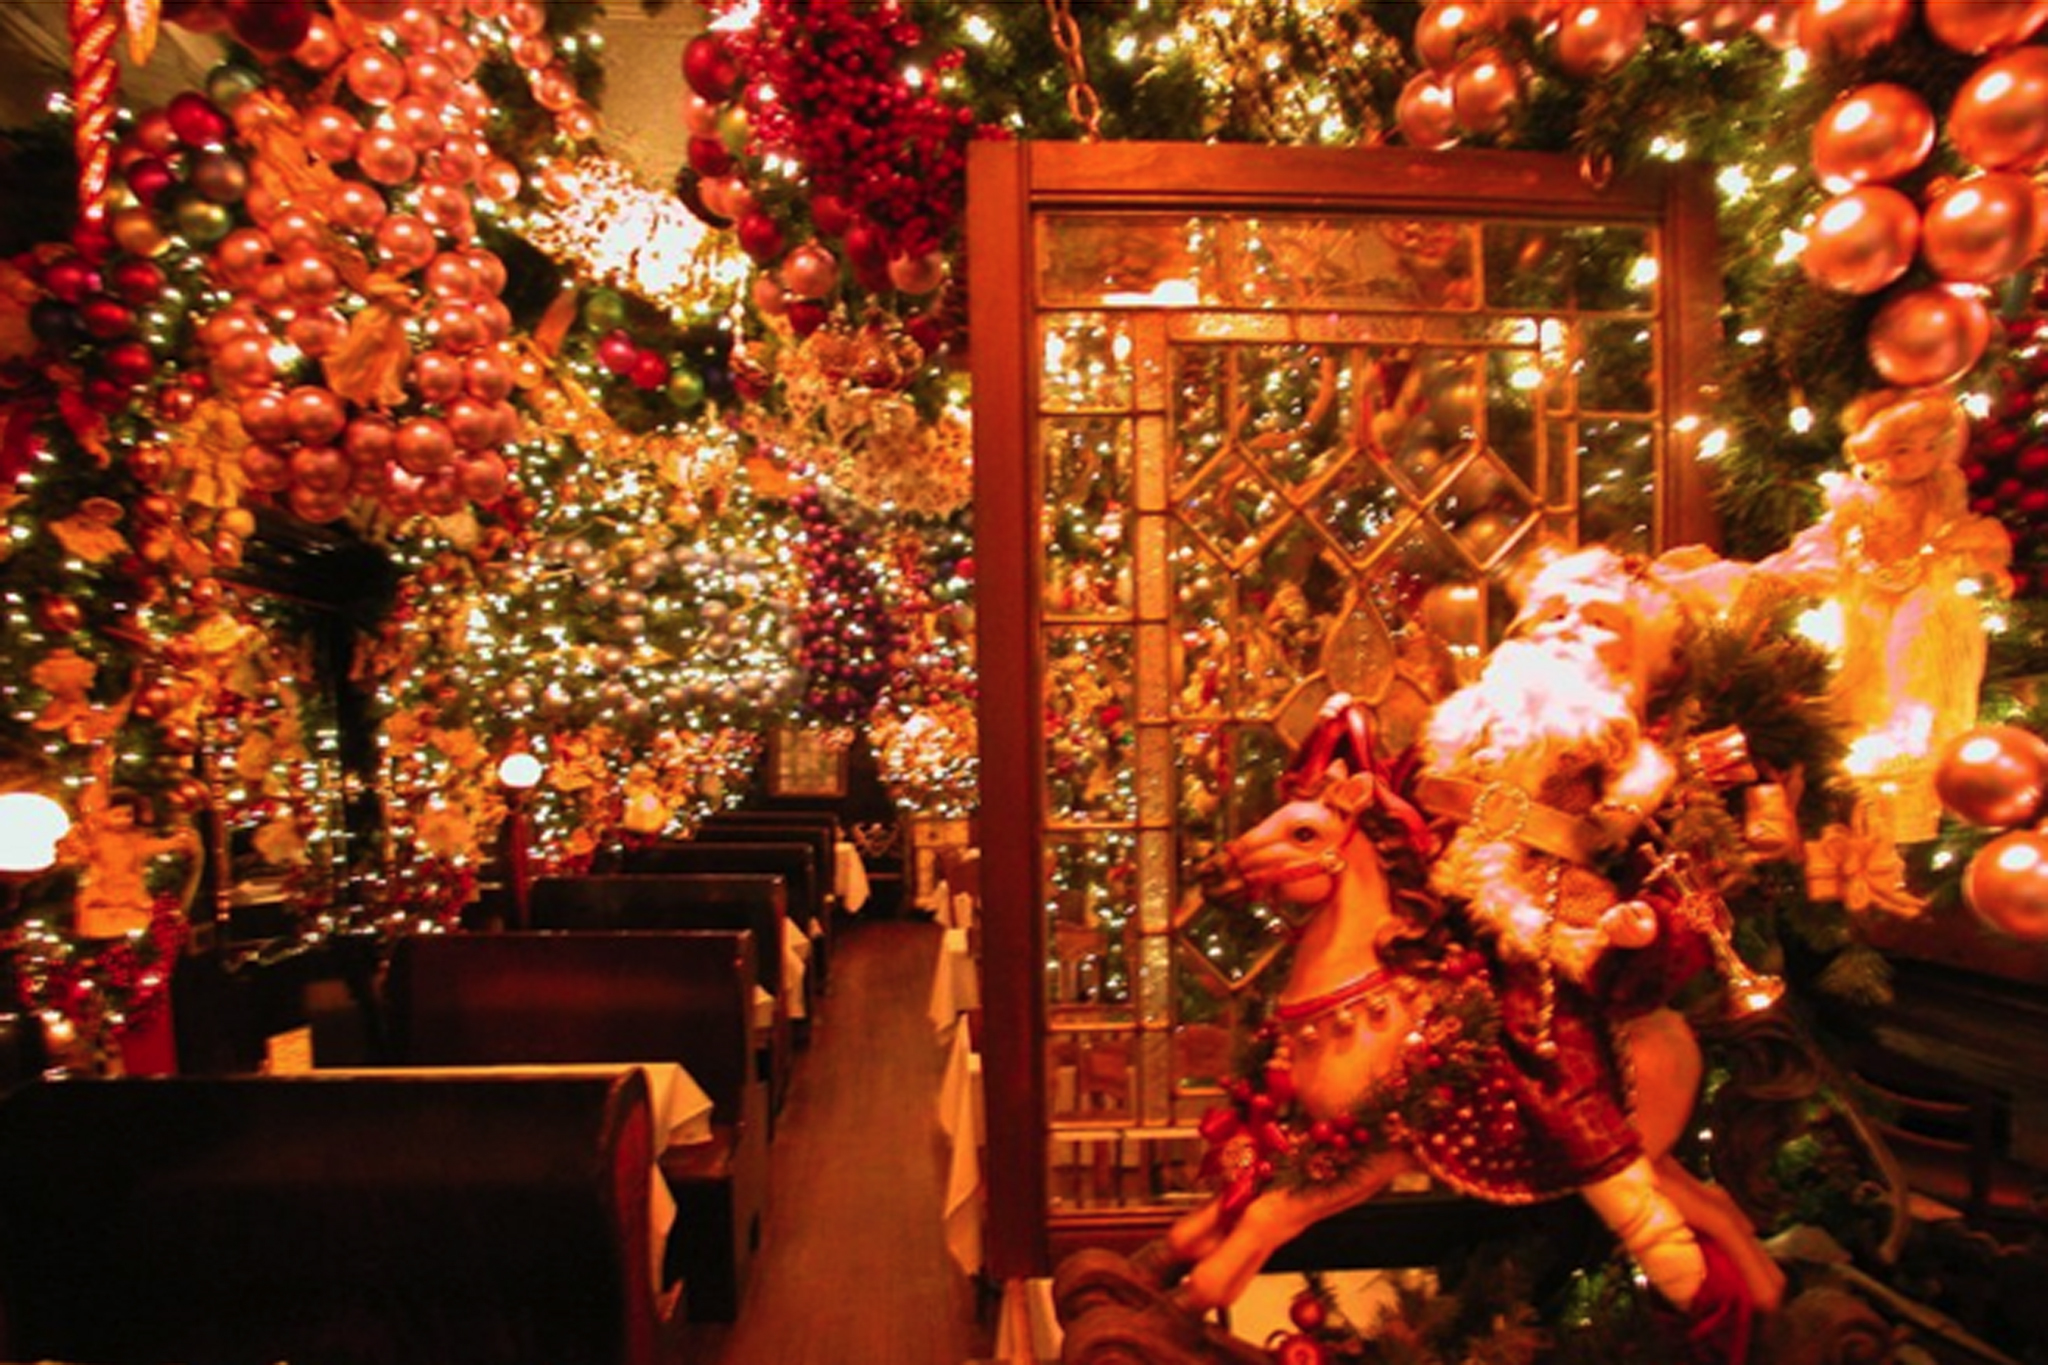 Rolf s restaurant restaurants in gramercy new york Latest christmas decorations